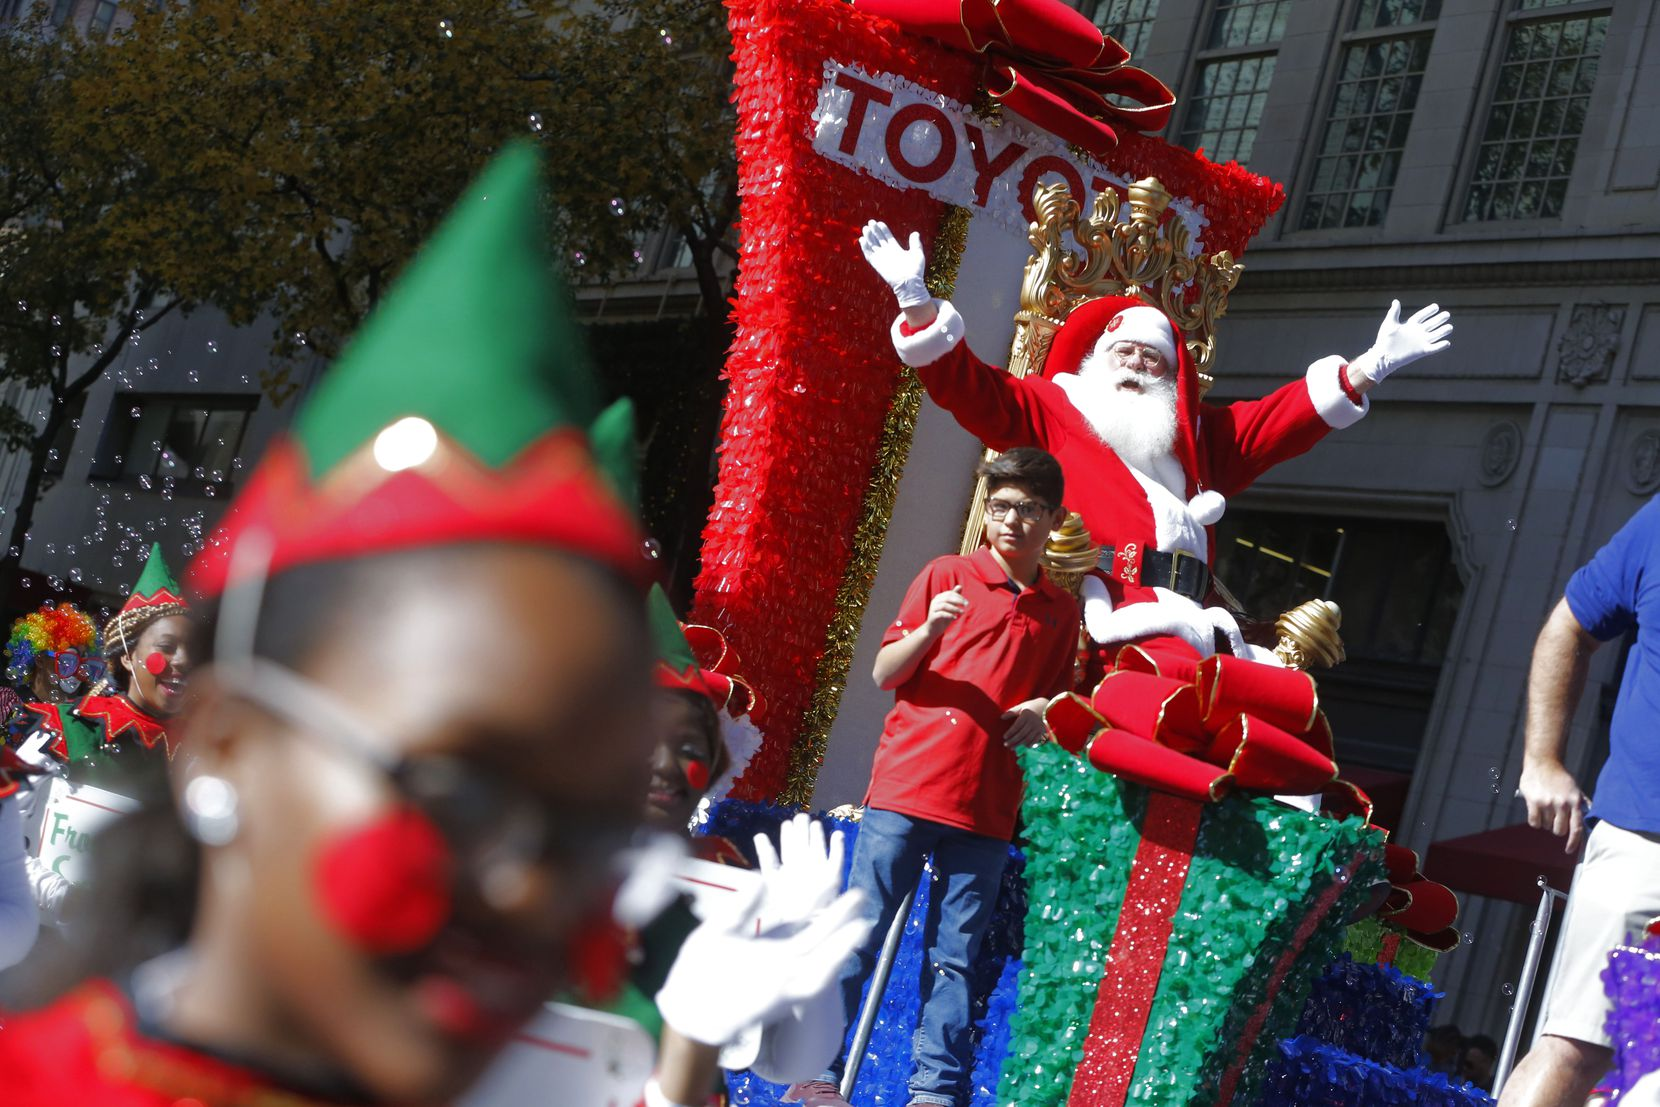 Keep an eye out for Santa at this year's Dallas parade on Dec. 7. The annual procession through downtown typically attracts hundreds of thousands of onlookers.